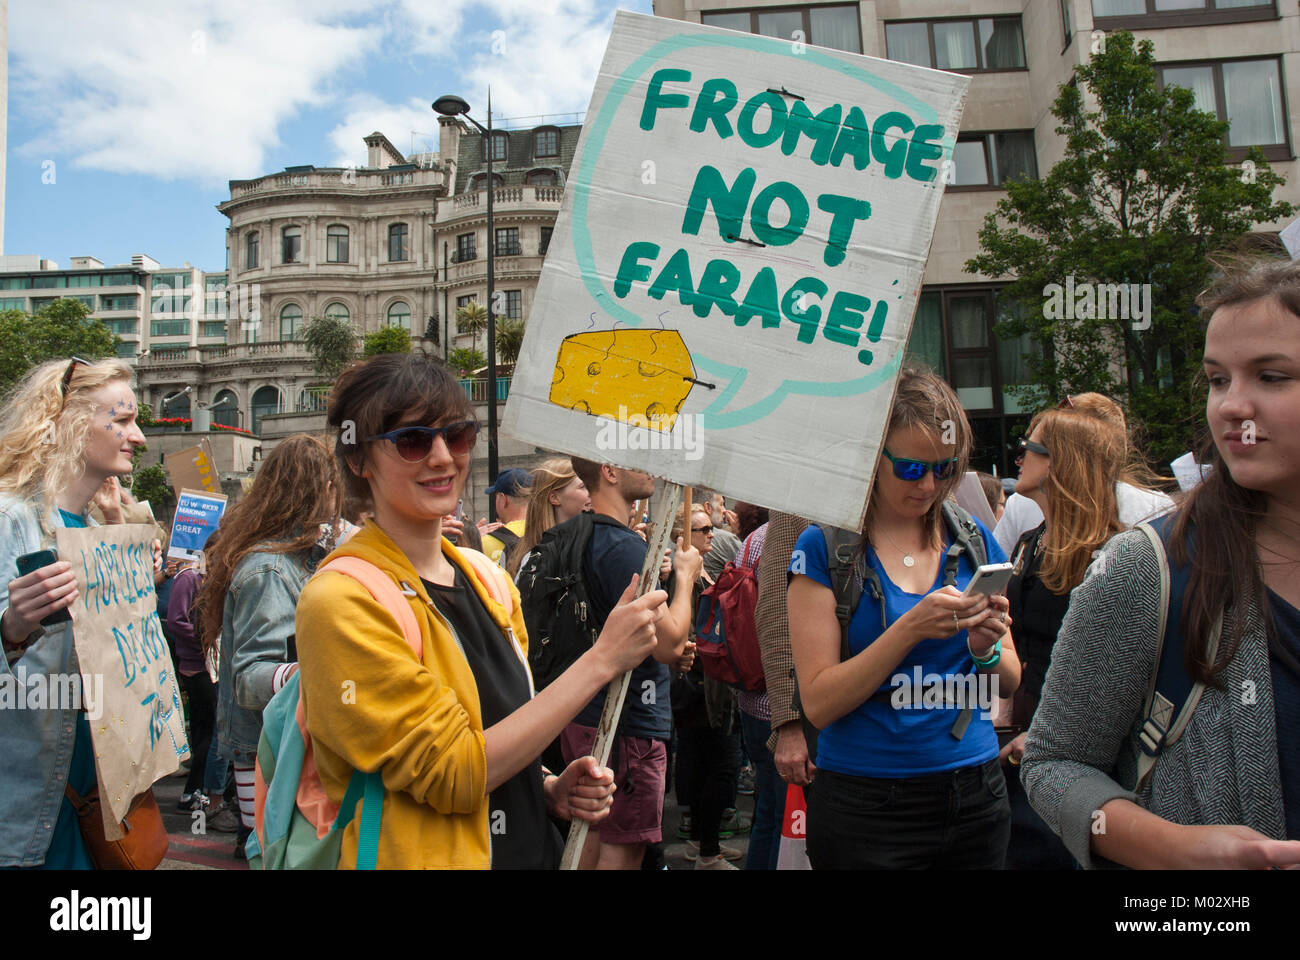 Demonstration against Brexit. Young woman, smiling, holds a placard 'Fromage not Farage' with illustration - Stock Image